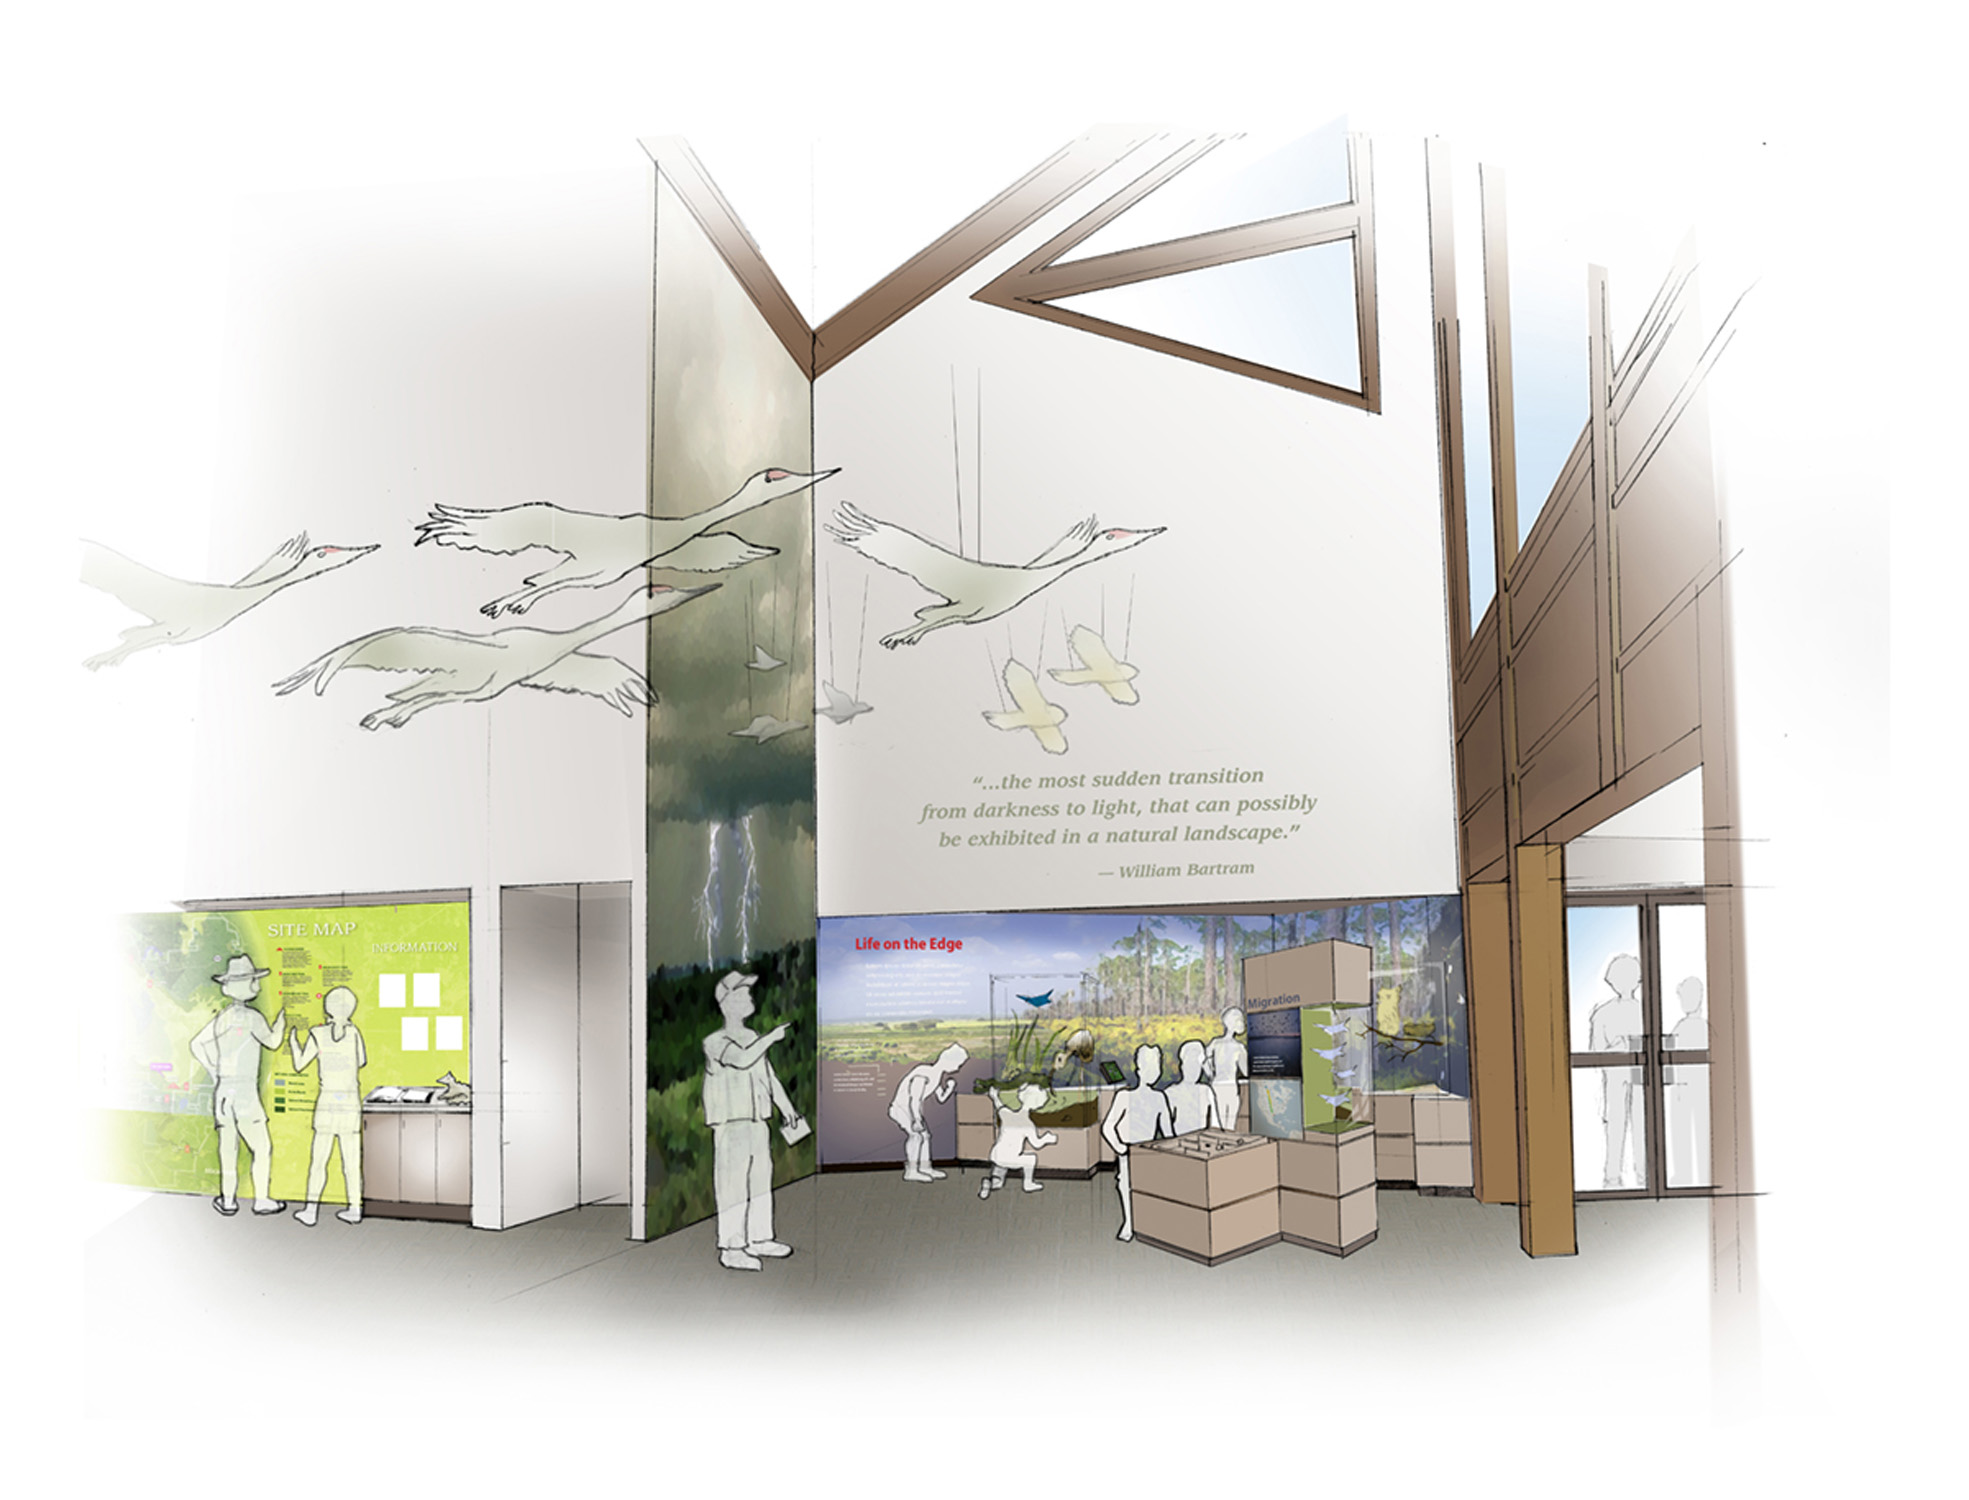 Florida Department of Parks and Recreation to transform their crown jewel visitor center, Paynes Prairie Preserve